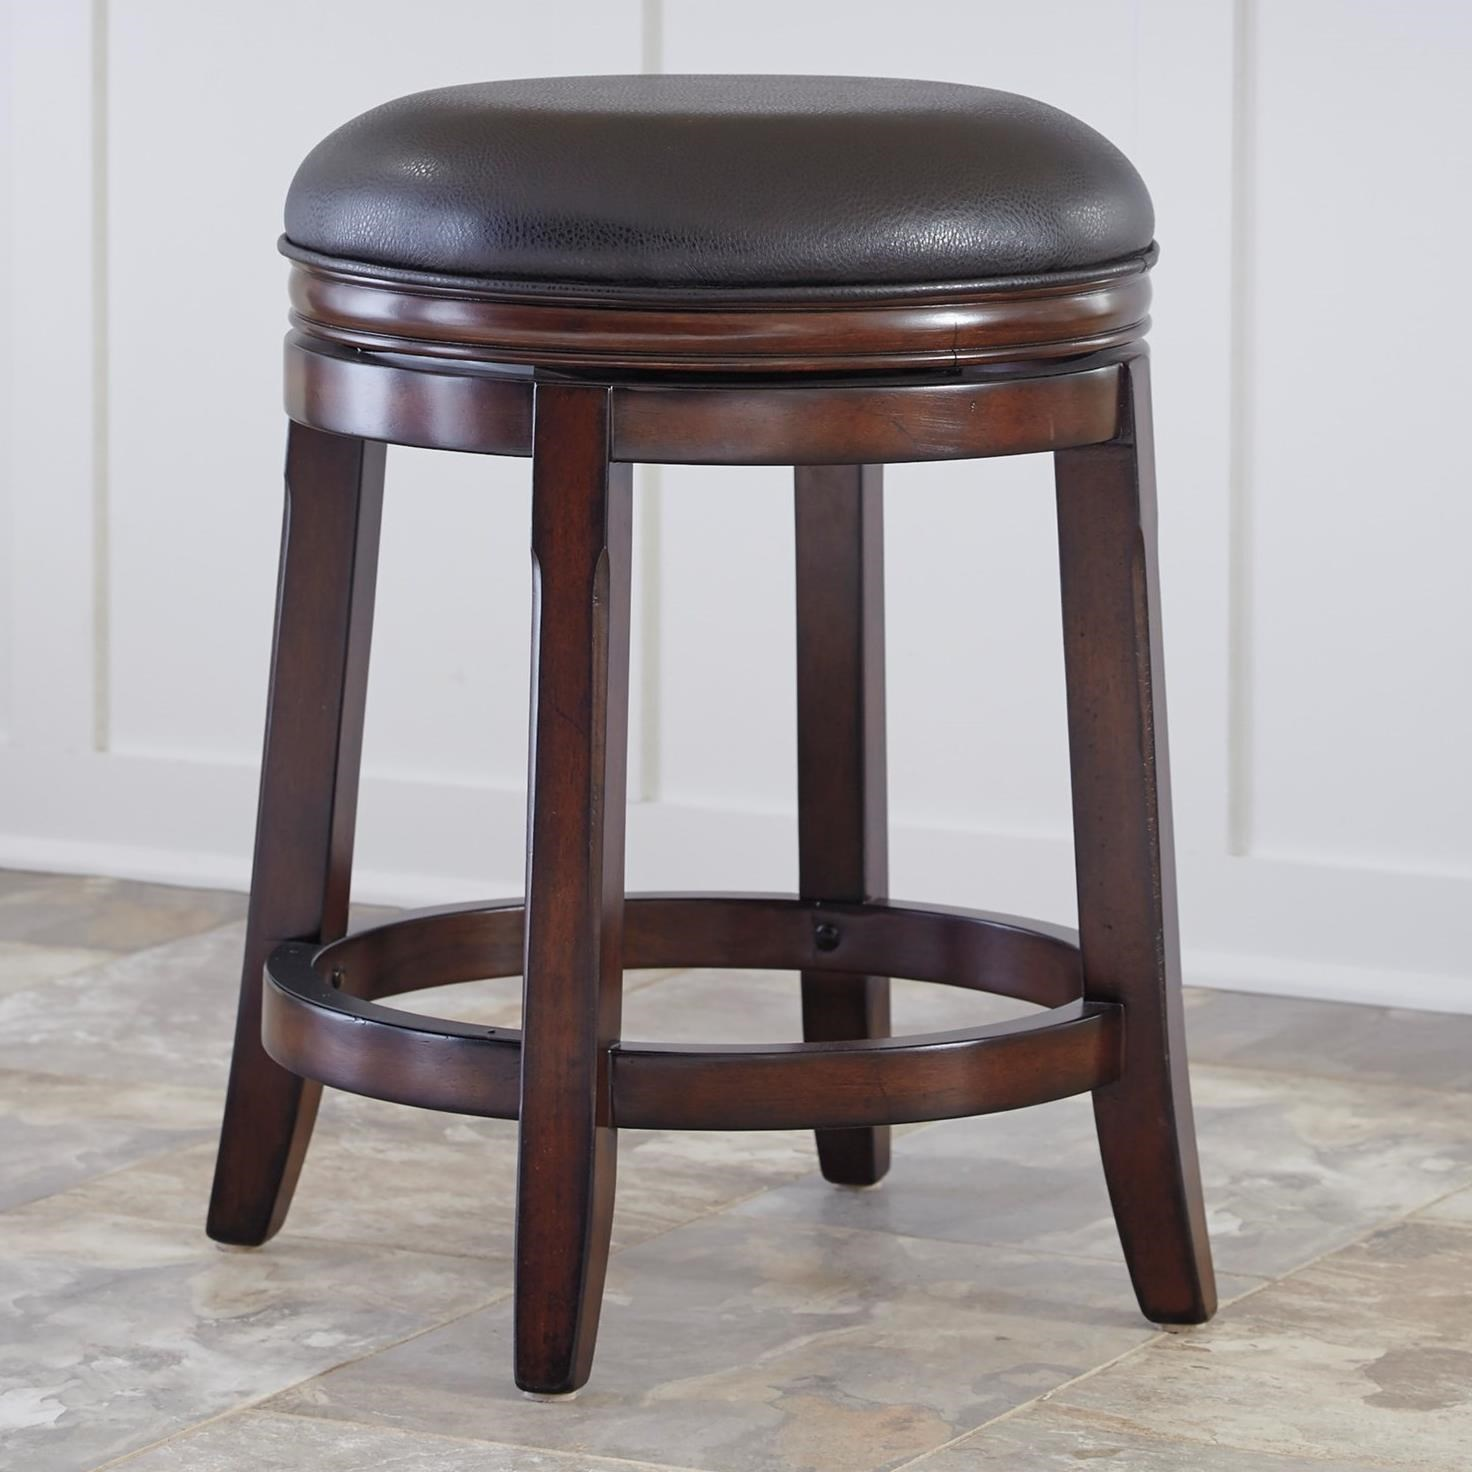 Fabric Counter Height Bar Stools Porter Counter Height Backless Upholstered Swivel Stool By Millennium At Rooms And Rest